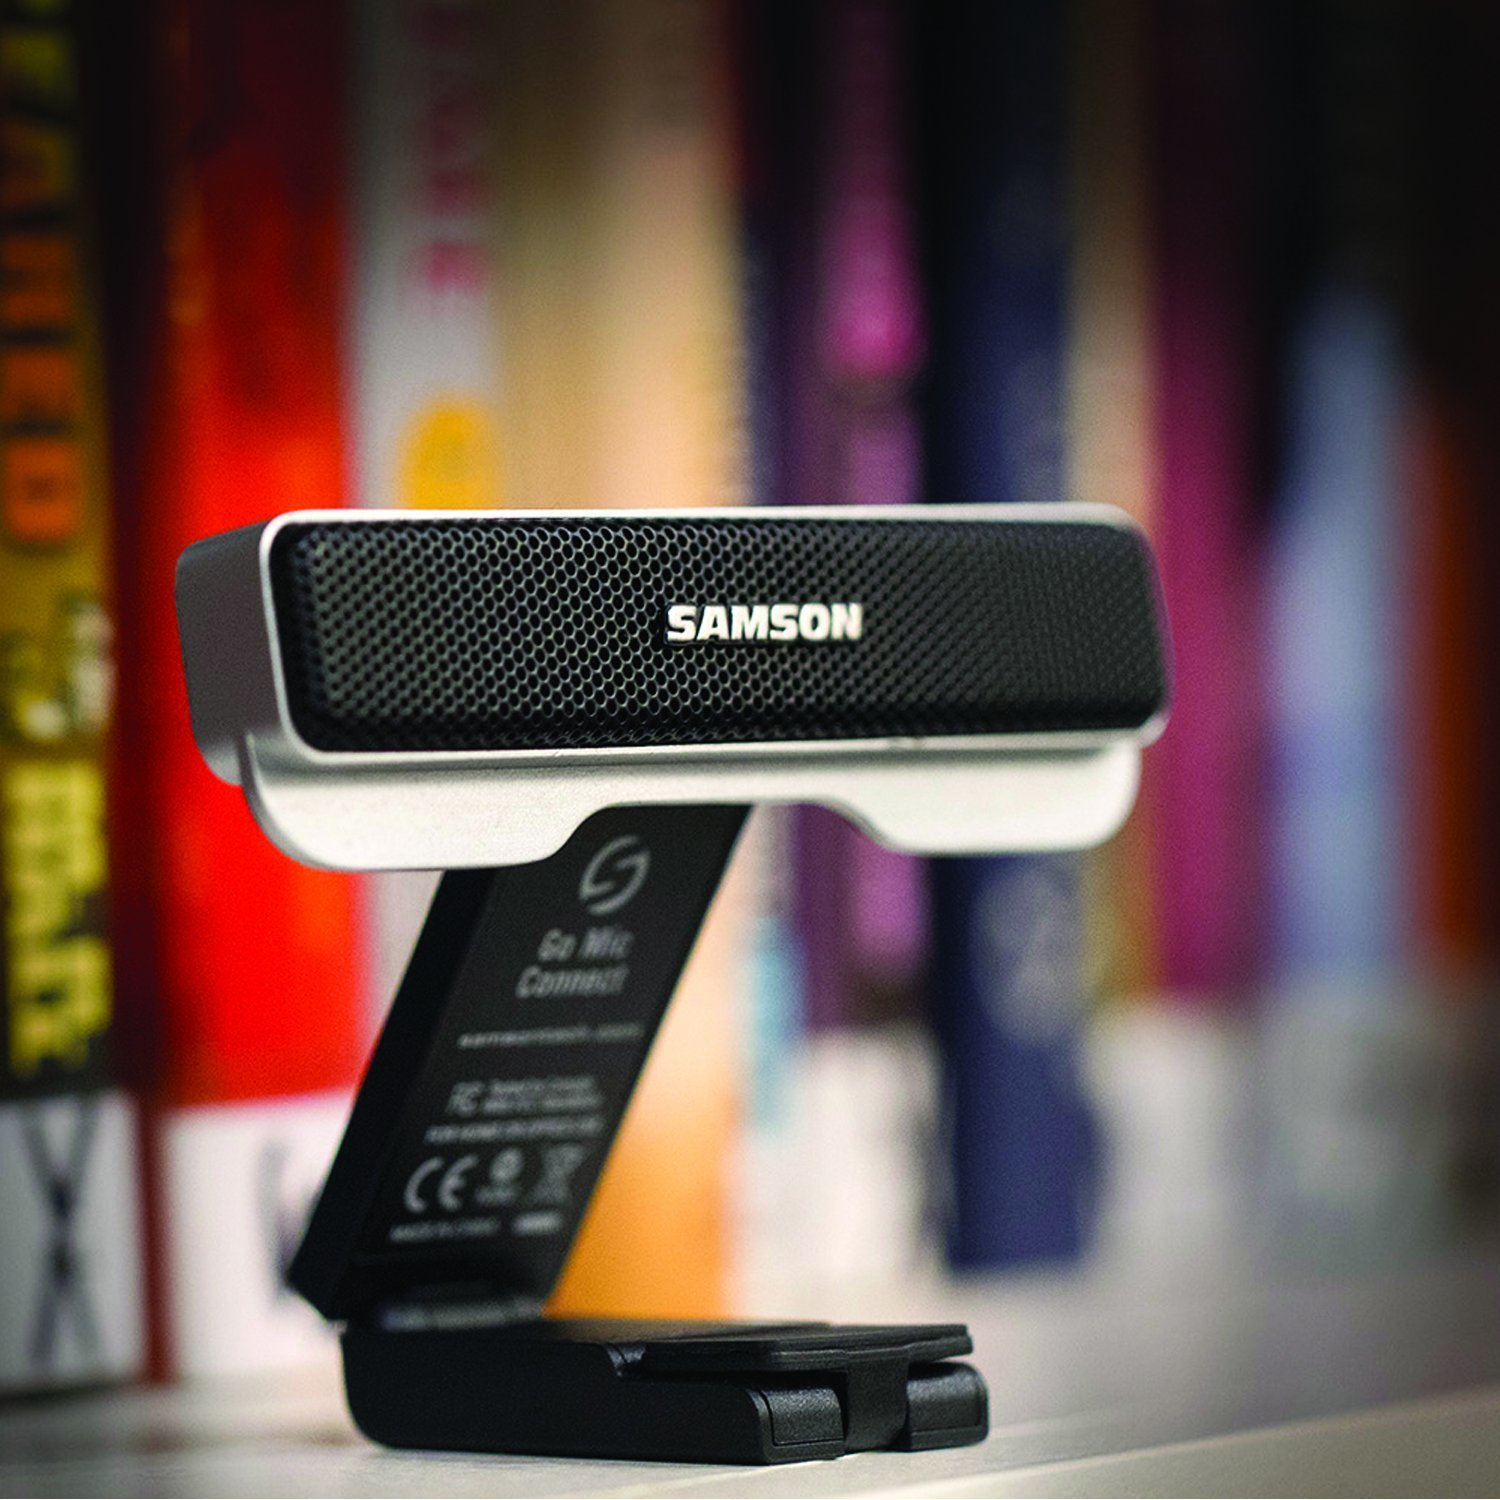 Samson Go Mic Connect Usb Microphone With Focused Pattern Tech For Skype FaceTime Google Hangouts Business